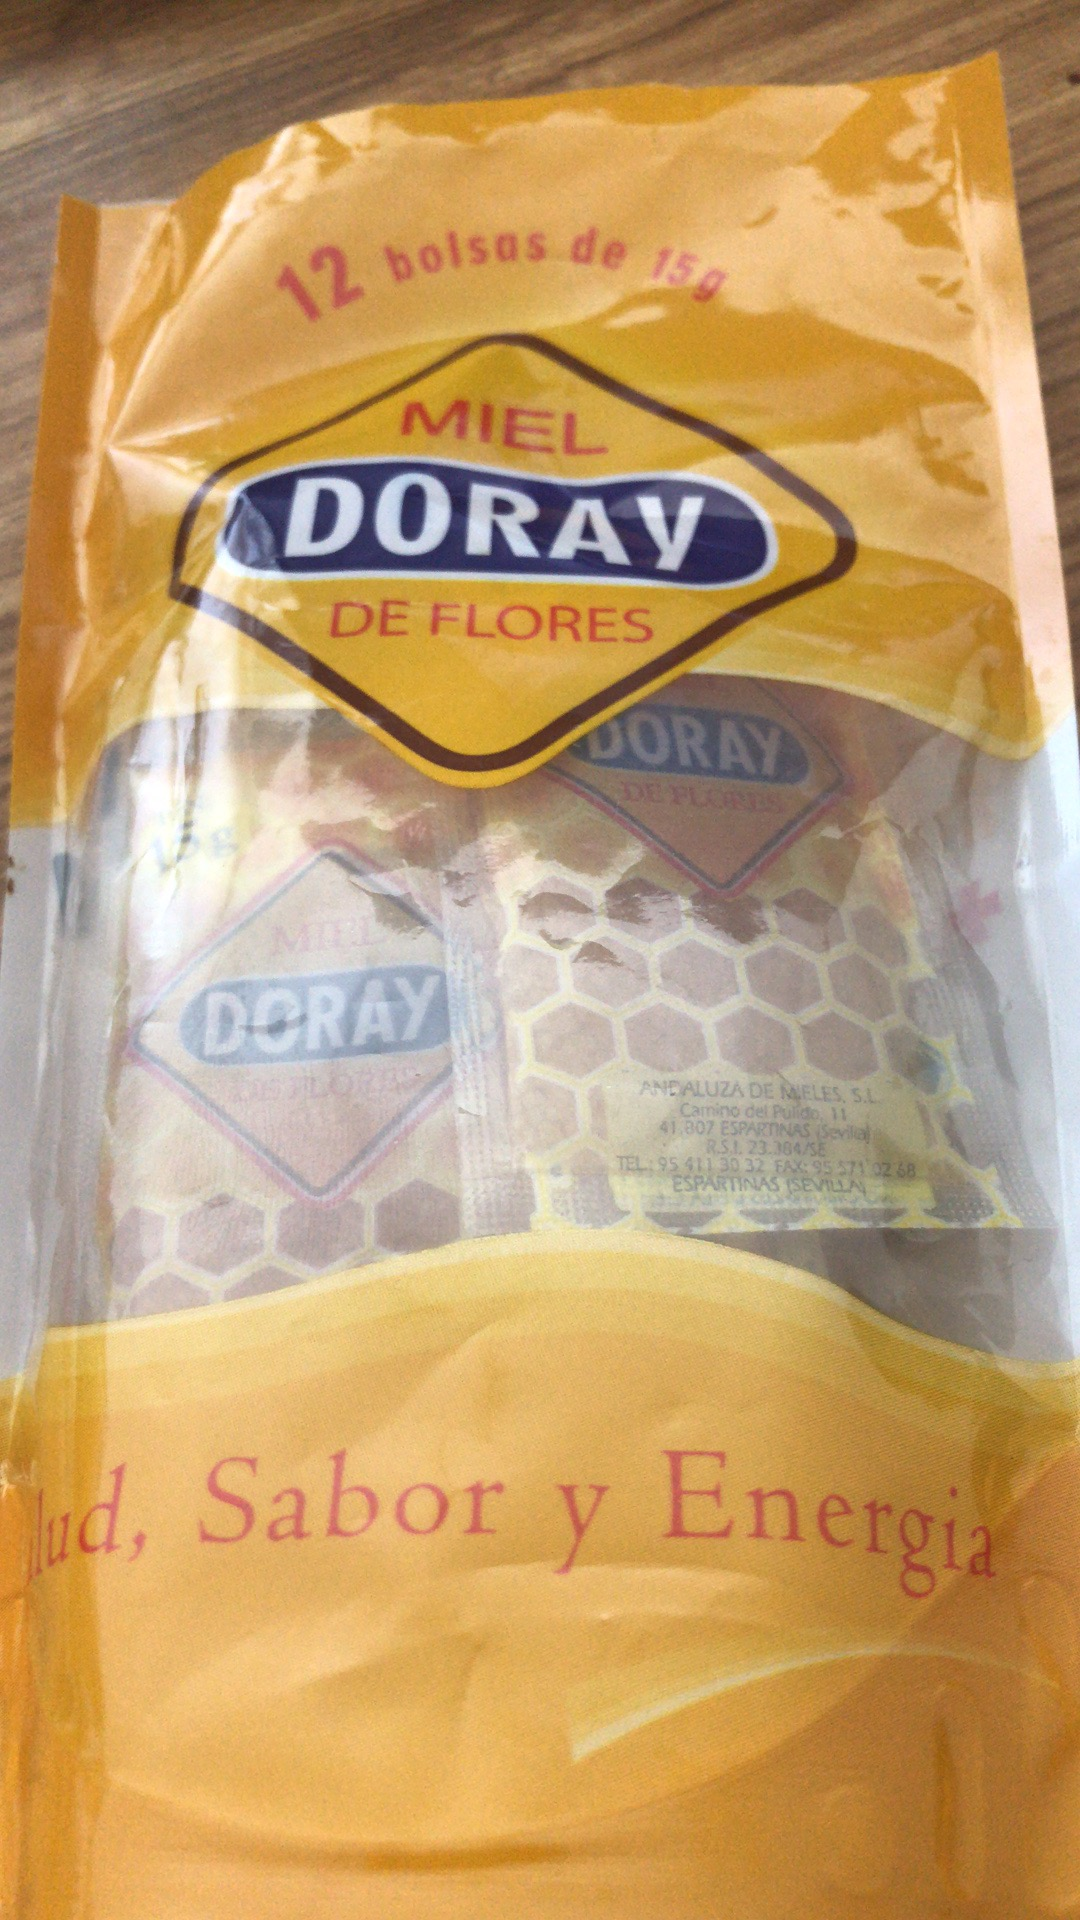 Doray hundred flowers honey is packed independently, super convenient!